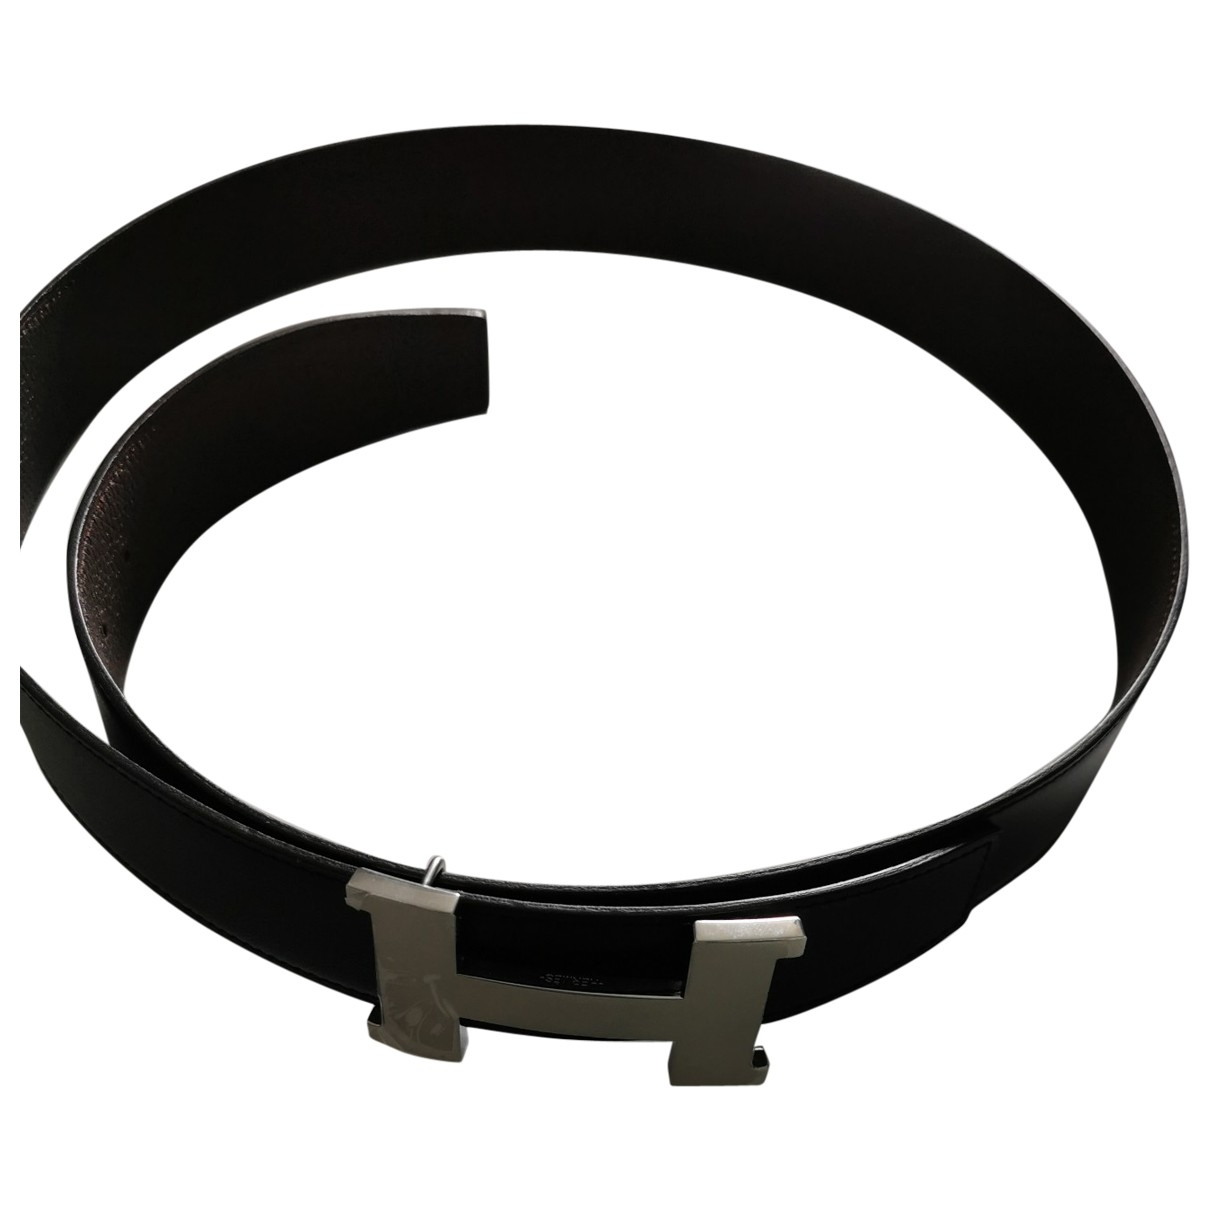 Hermès H Black Leather belt for Men 100 cm